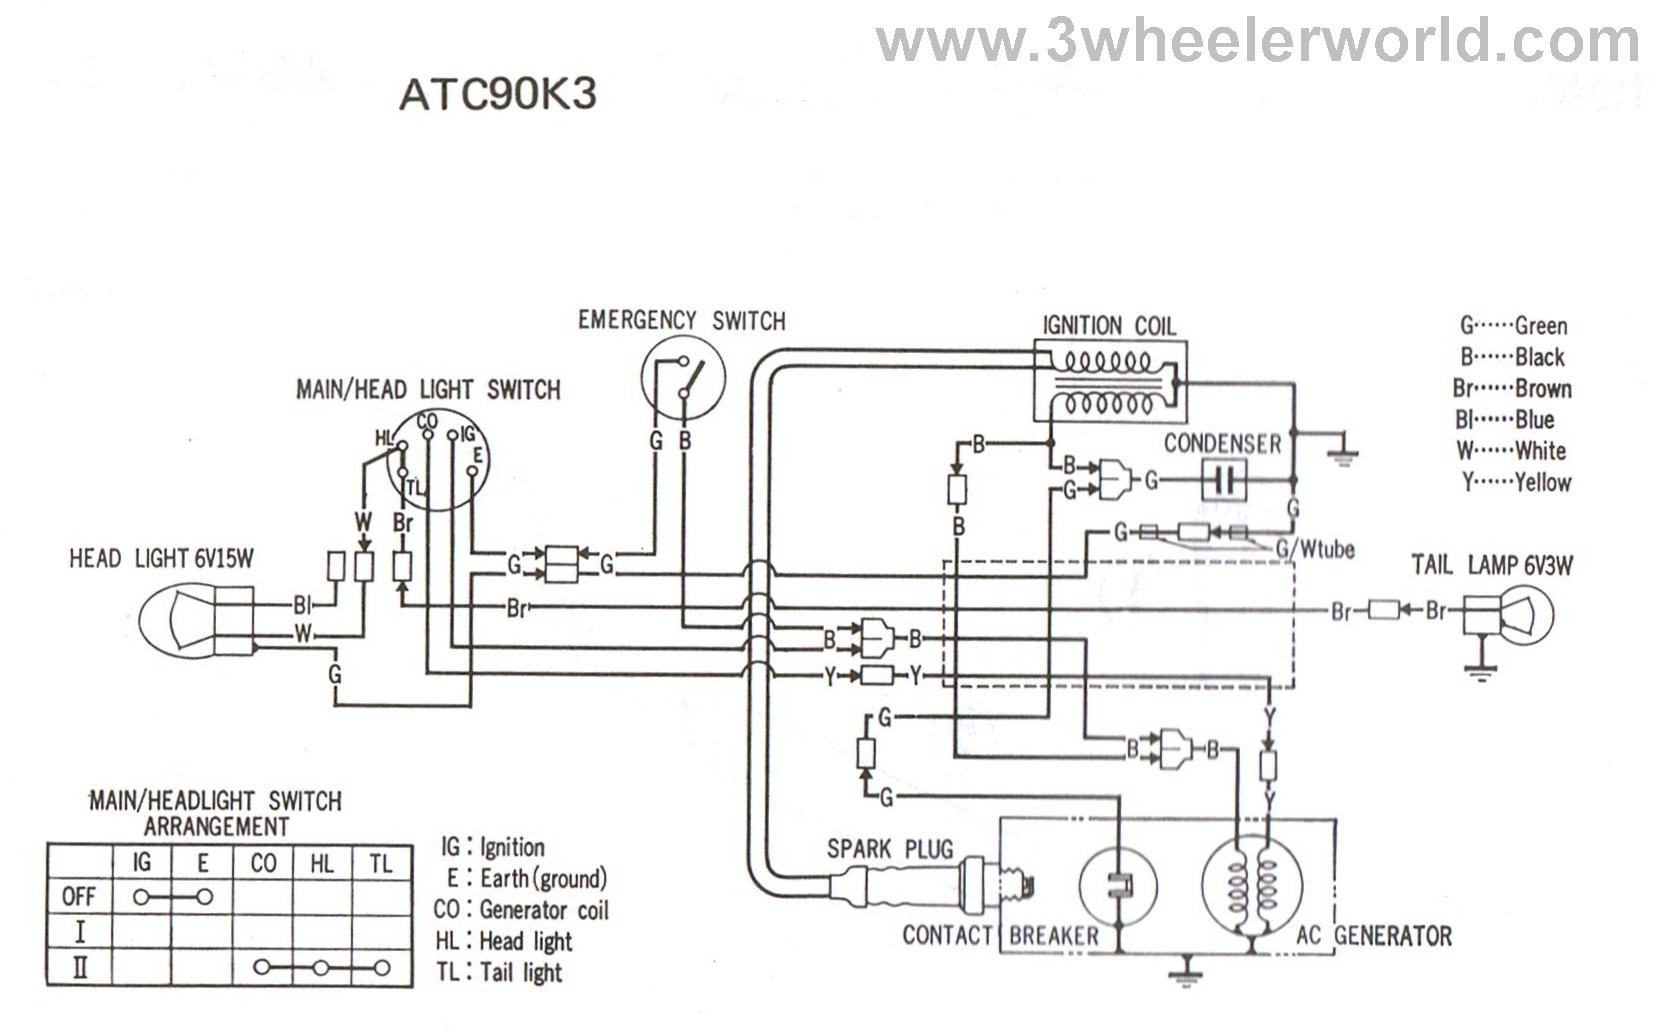 honda mr50 wiring diagram - wiring diagram dat chip-select -  chip-select.tenutaborgolano.it  tenuta borgolano